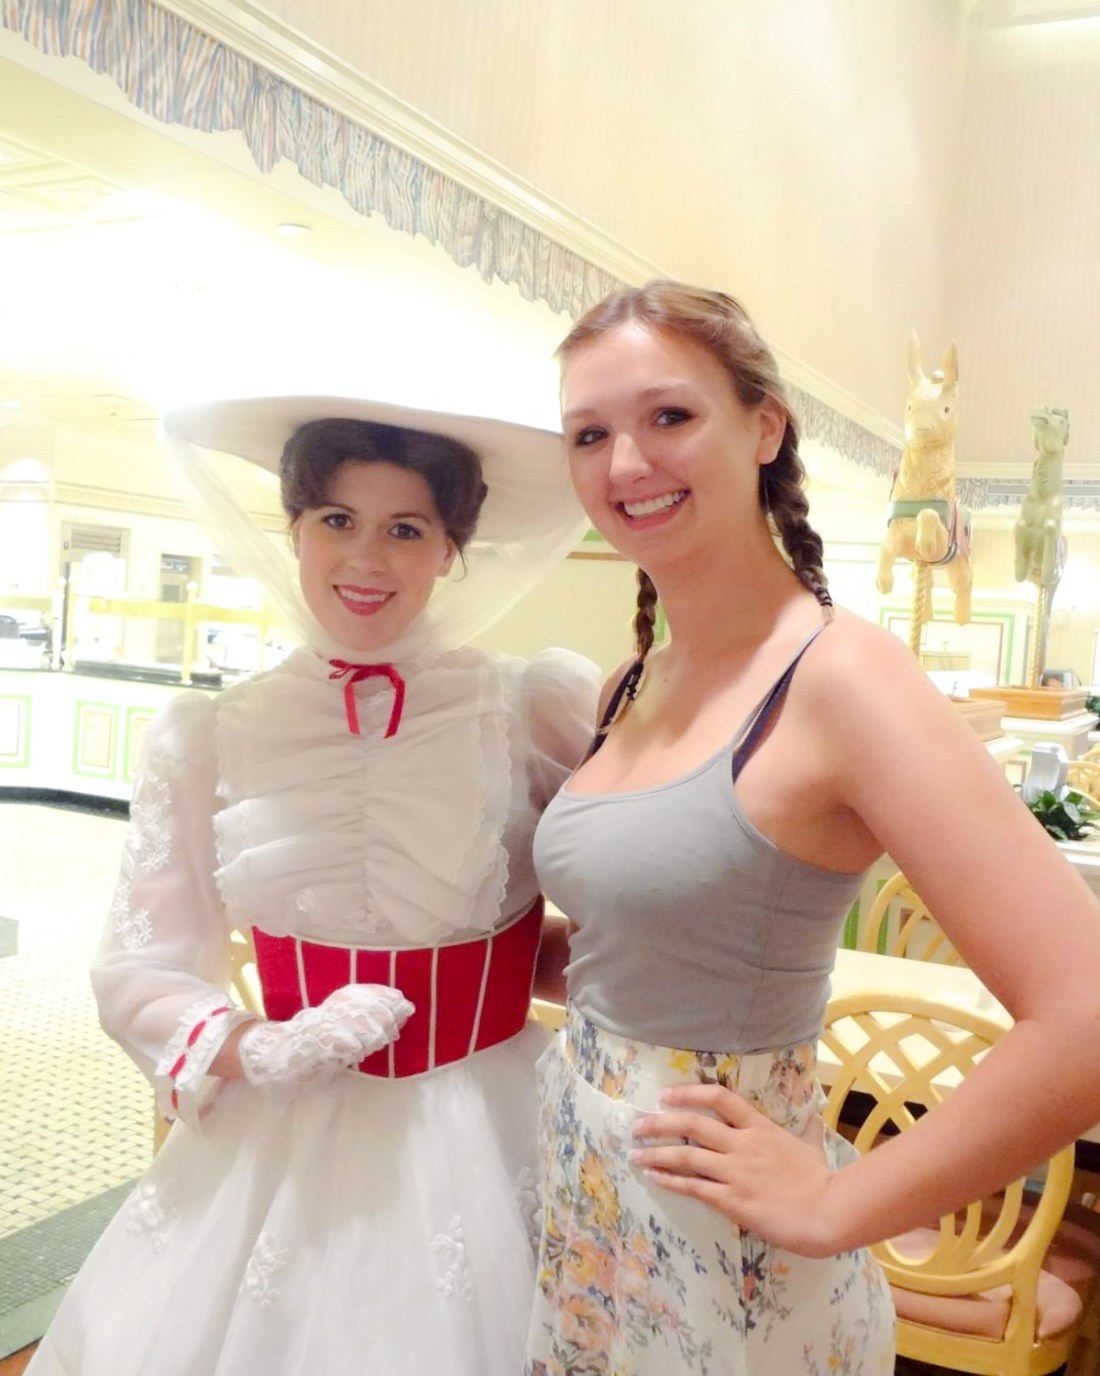 Are you ready to meet cool characters like Mary Poppins at 1900 Park Fare at the Grand Floridian